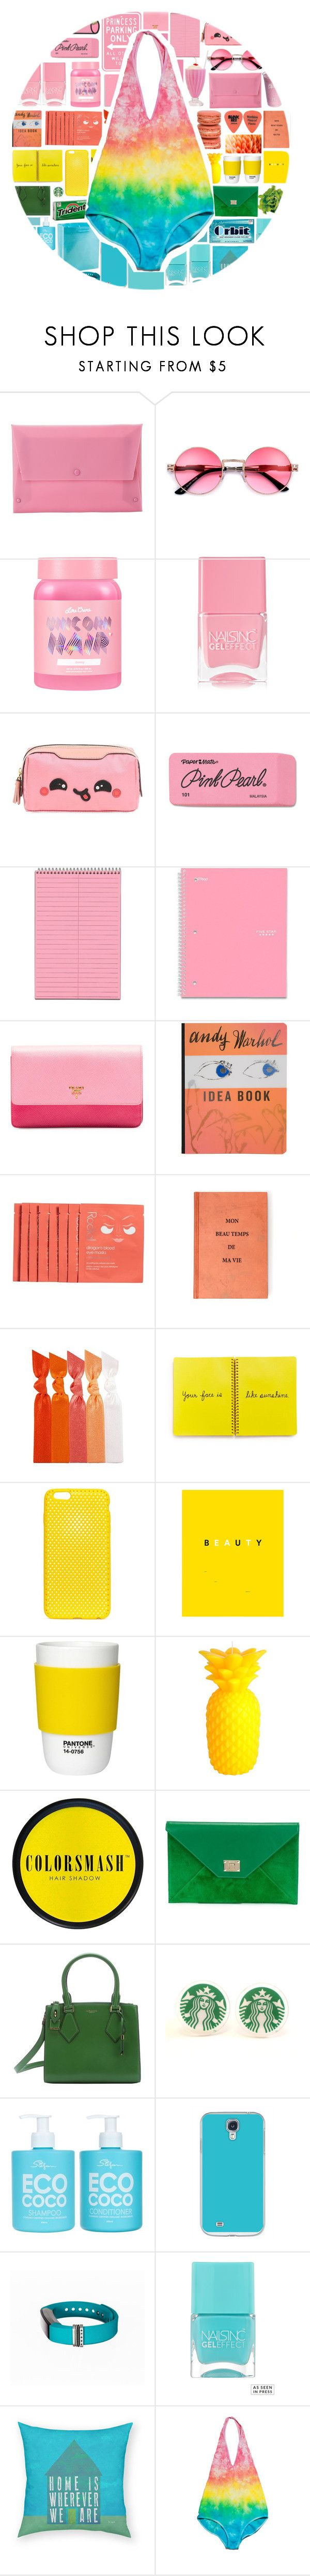 """""""Colors"""" by stelbell ❤ liked on Polyvore featuring MANGO, Lime Crime, Nails Inc., Anya Hindmarch, Paper Mate, Five Star, Prada, Burberry, ELSE and Rodial"""